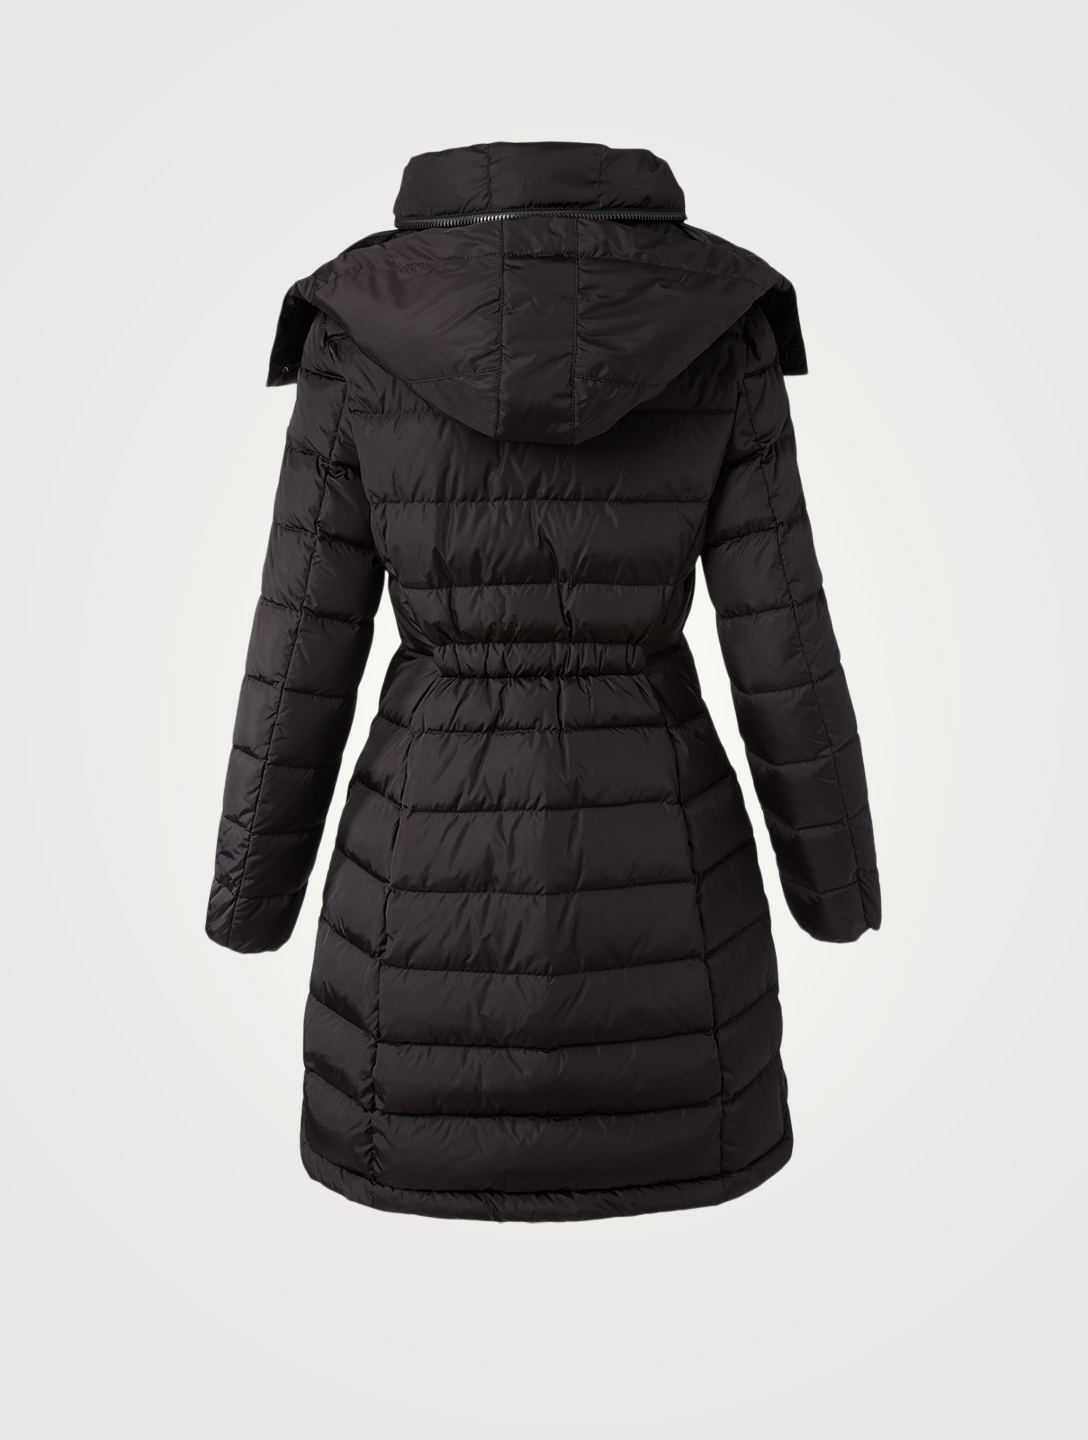 MONCLER Flammette Down Jacket Women's Black